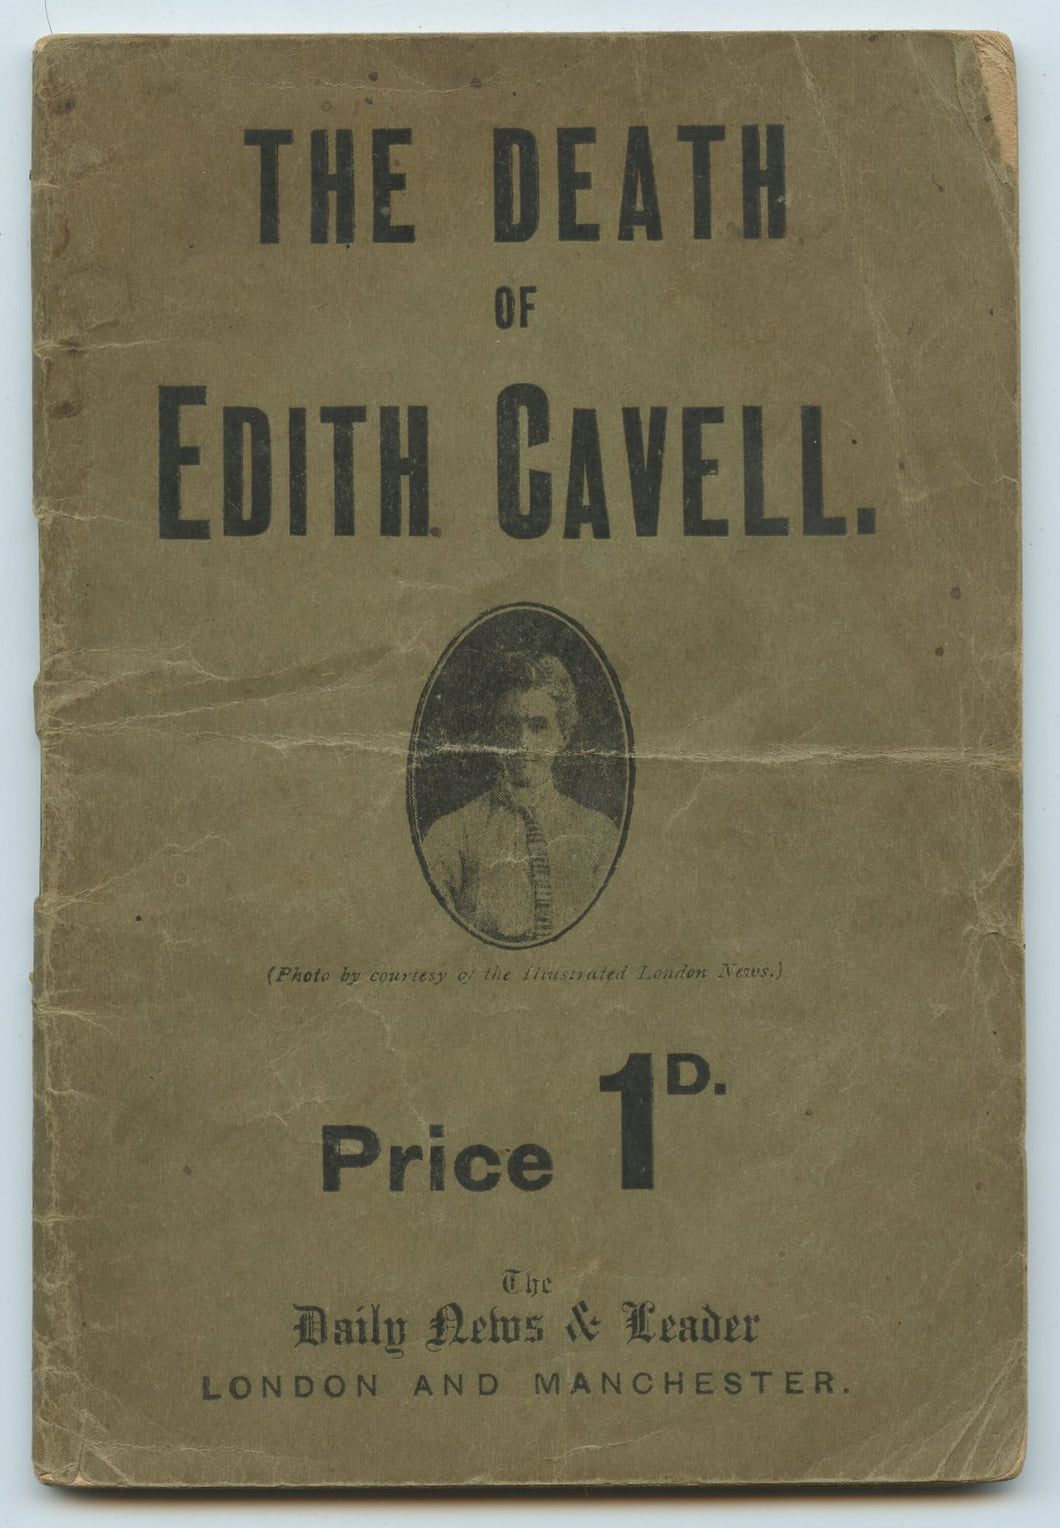 The Death of Edith Cavell